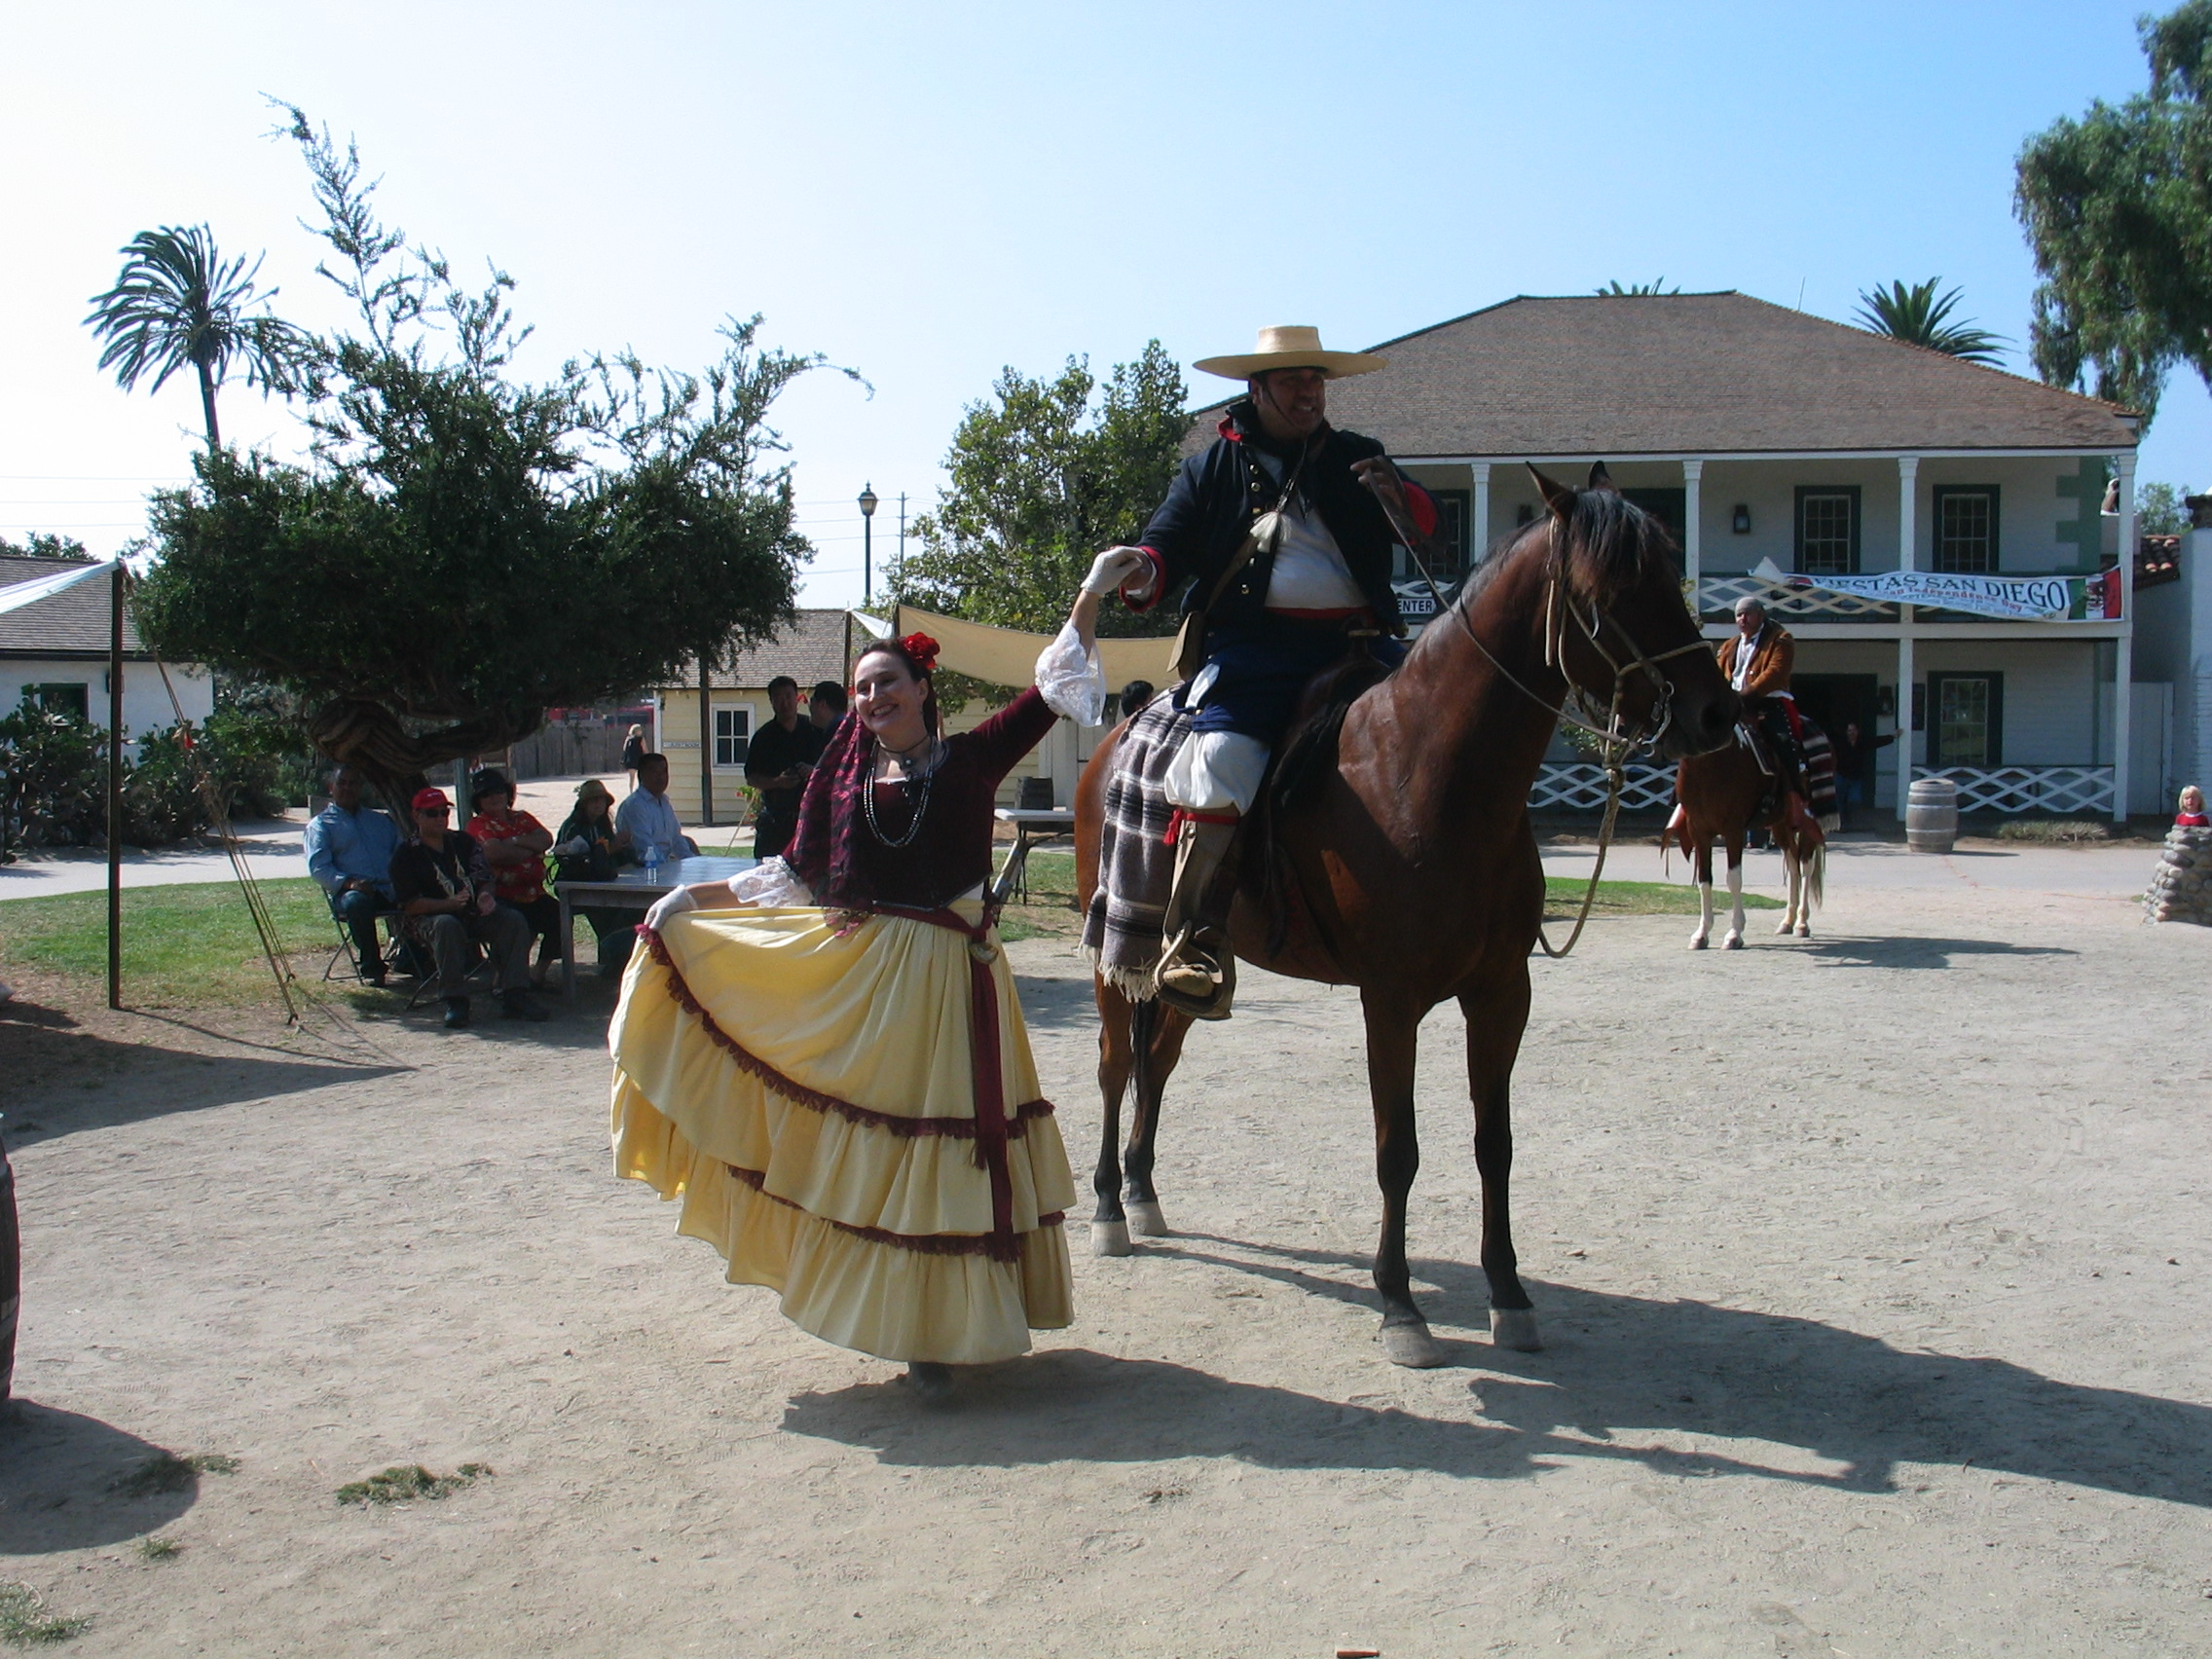 Photo from Fiestas Patrias Special Event on Sept. 14, 2008 at Old Town San Diego SHP